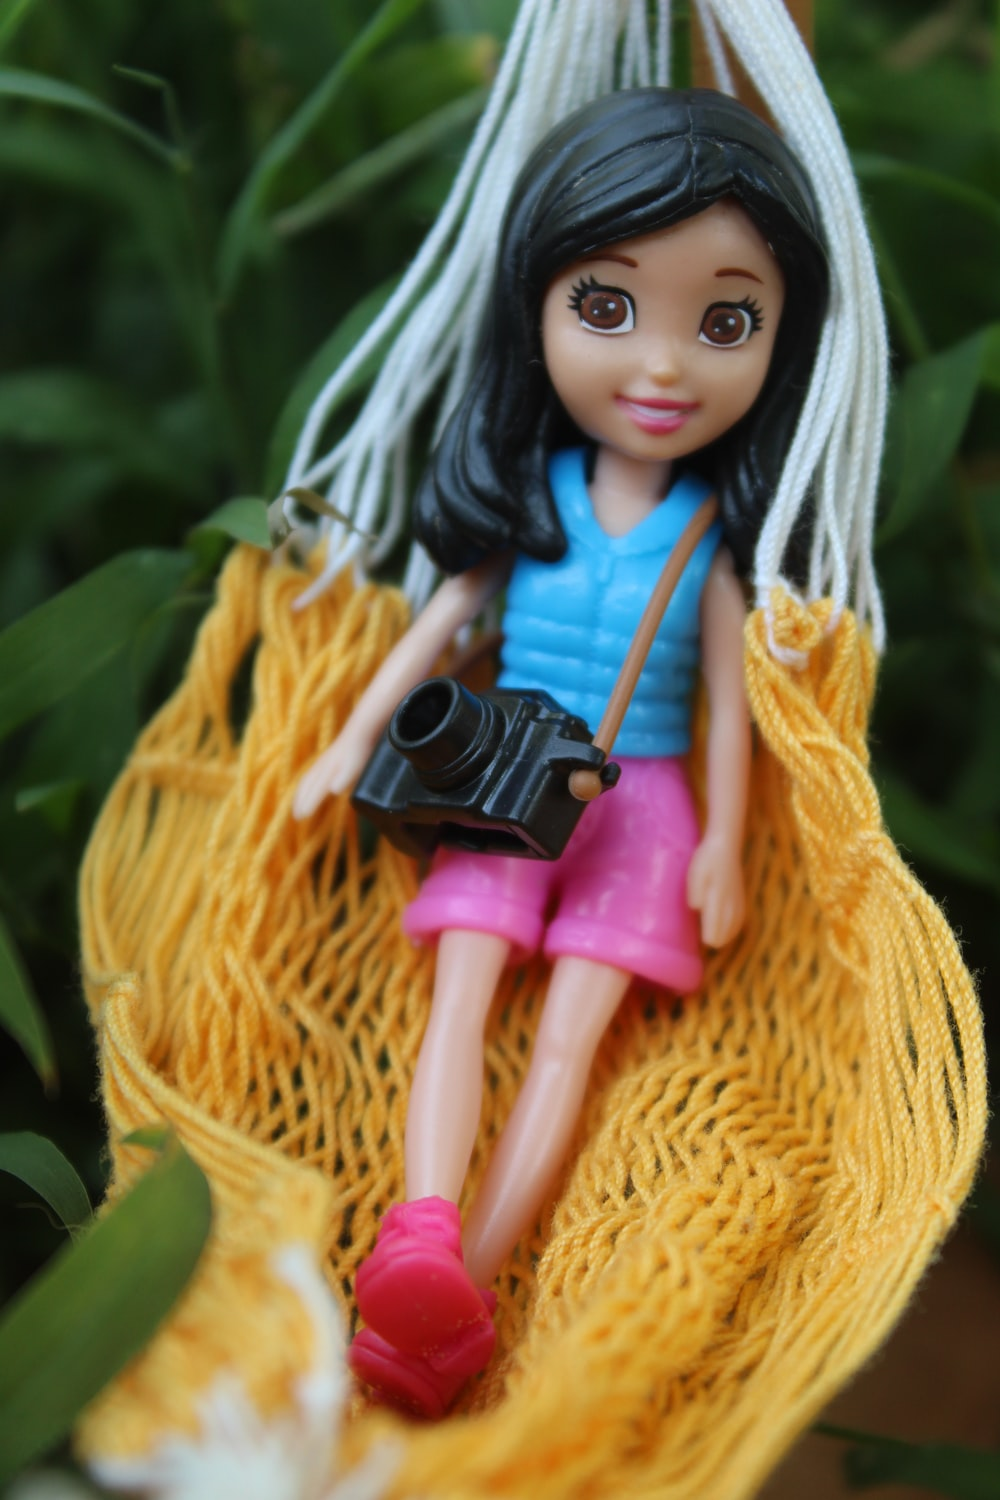 girl wearing blue tank top and shorts doll on hammock